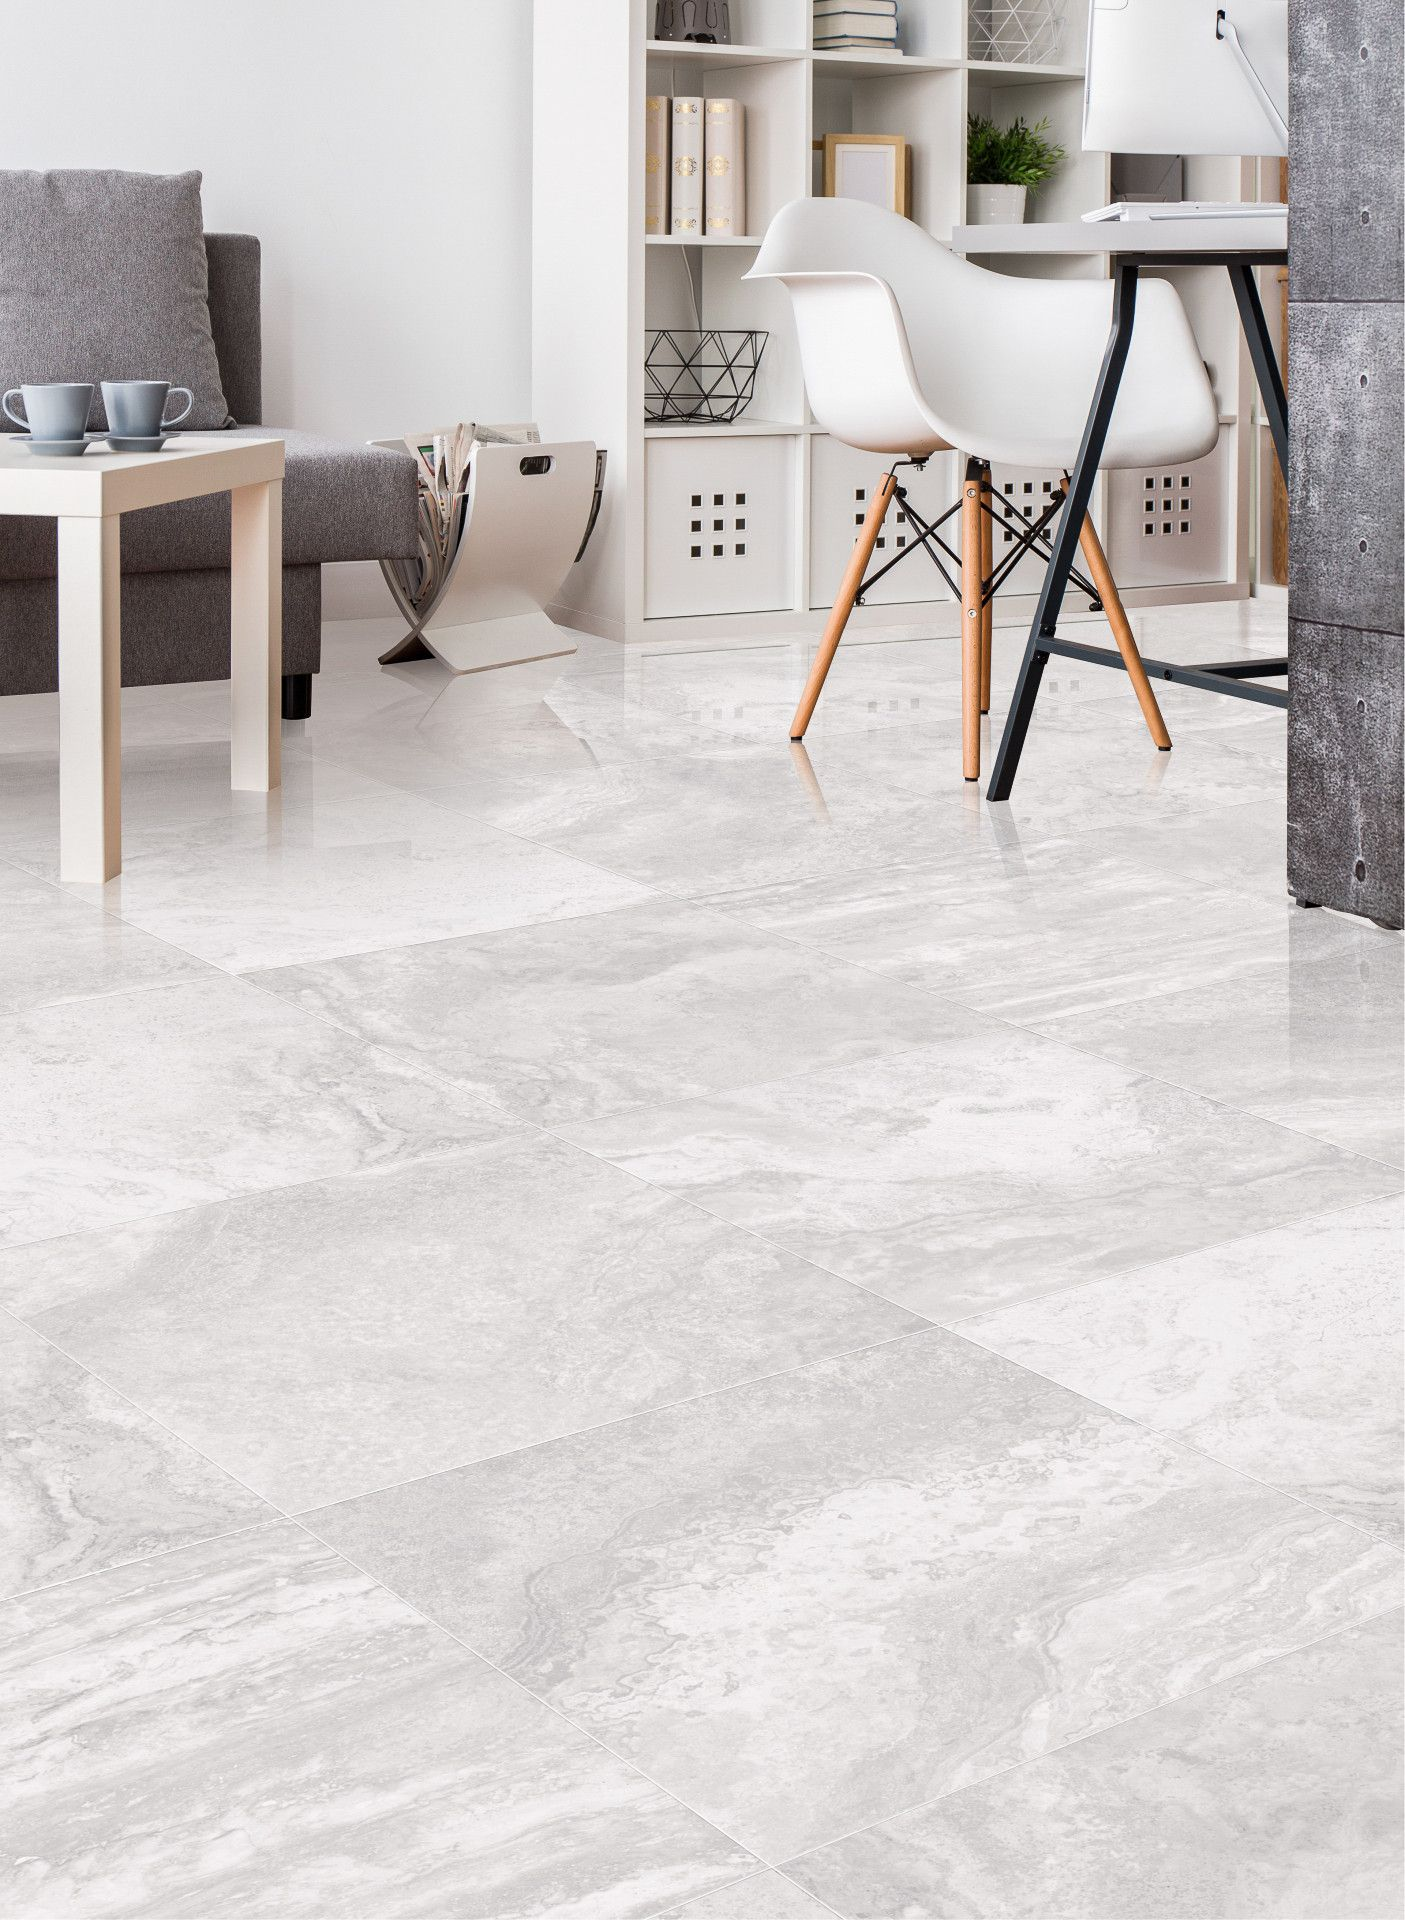 Elite Travertine Silver Grey Tile I N T E R I O R S H O M E